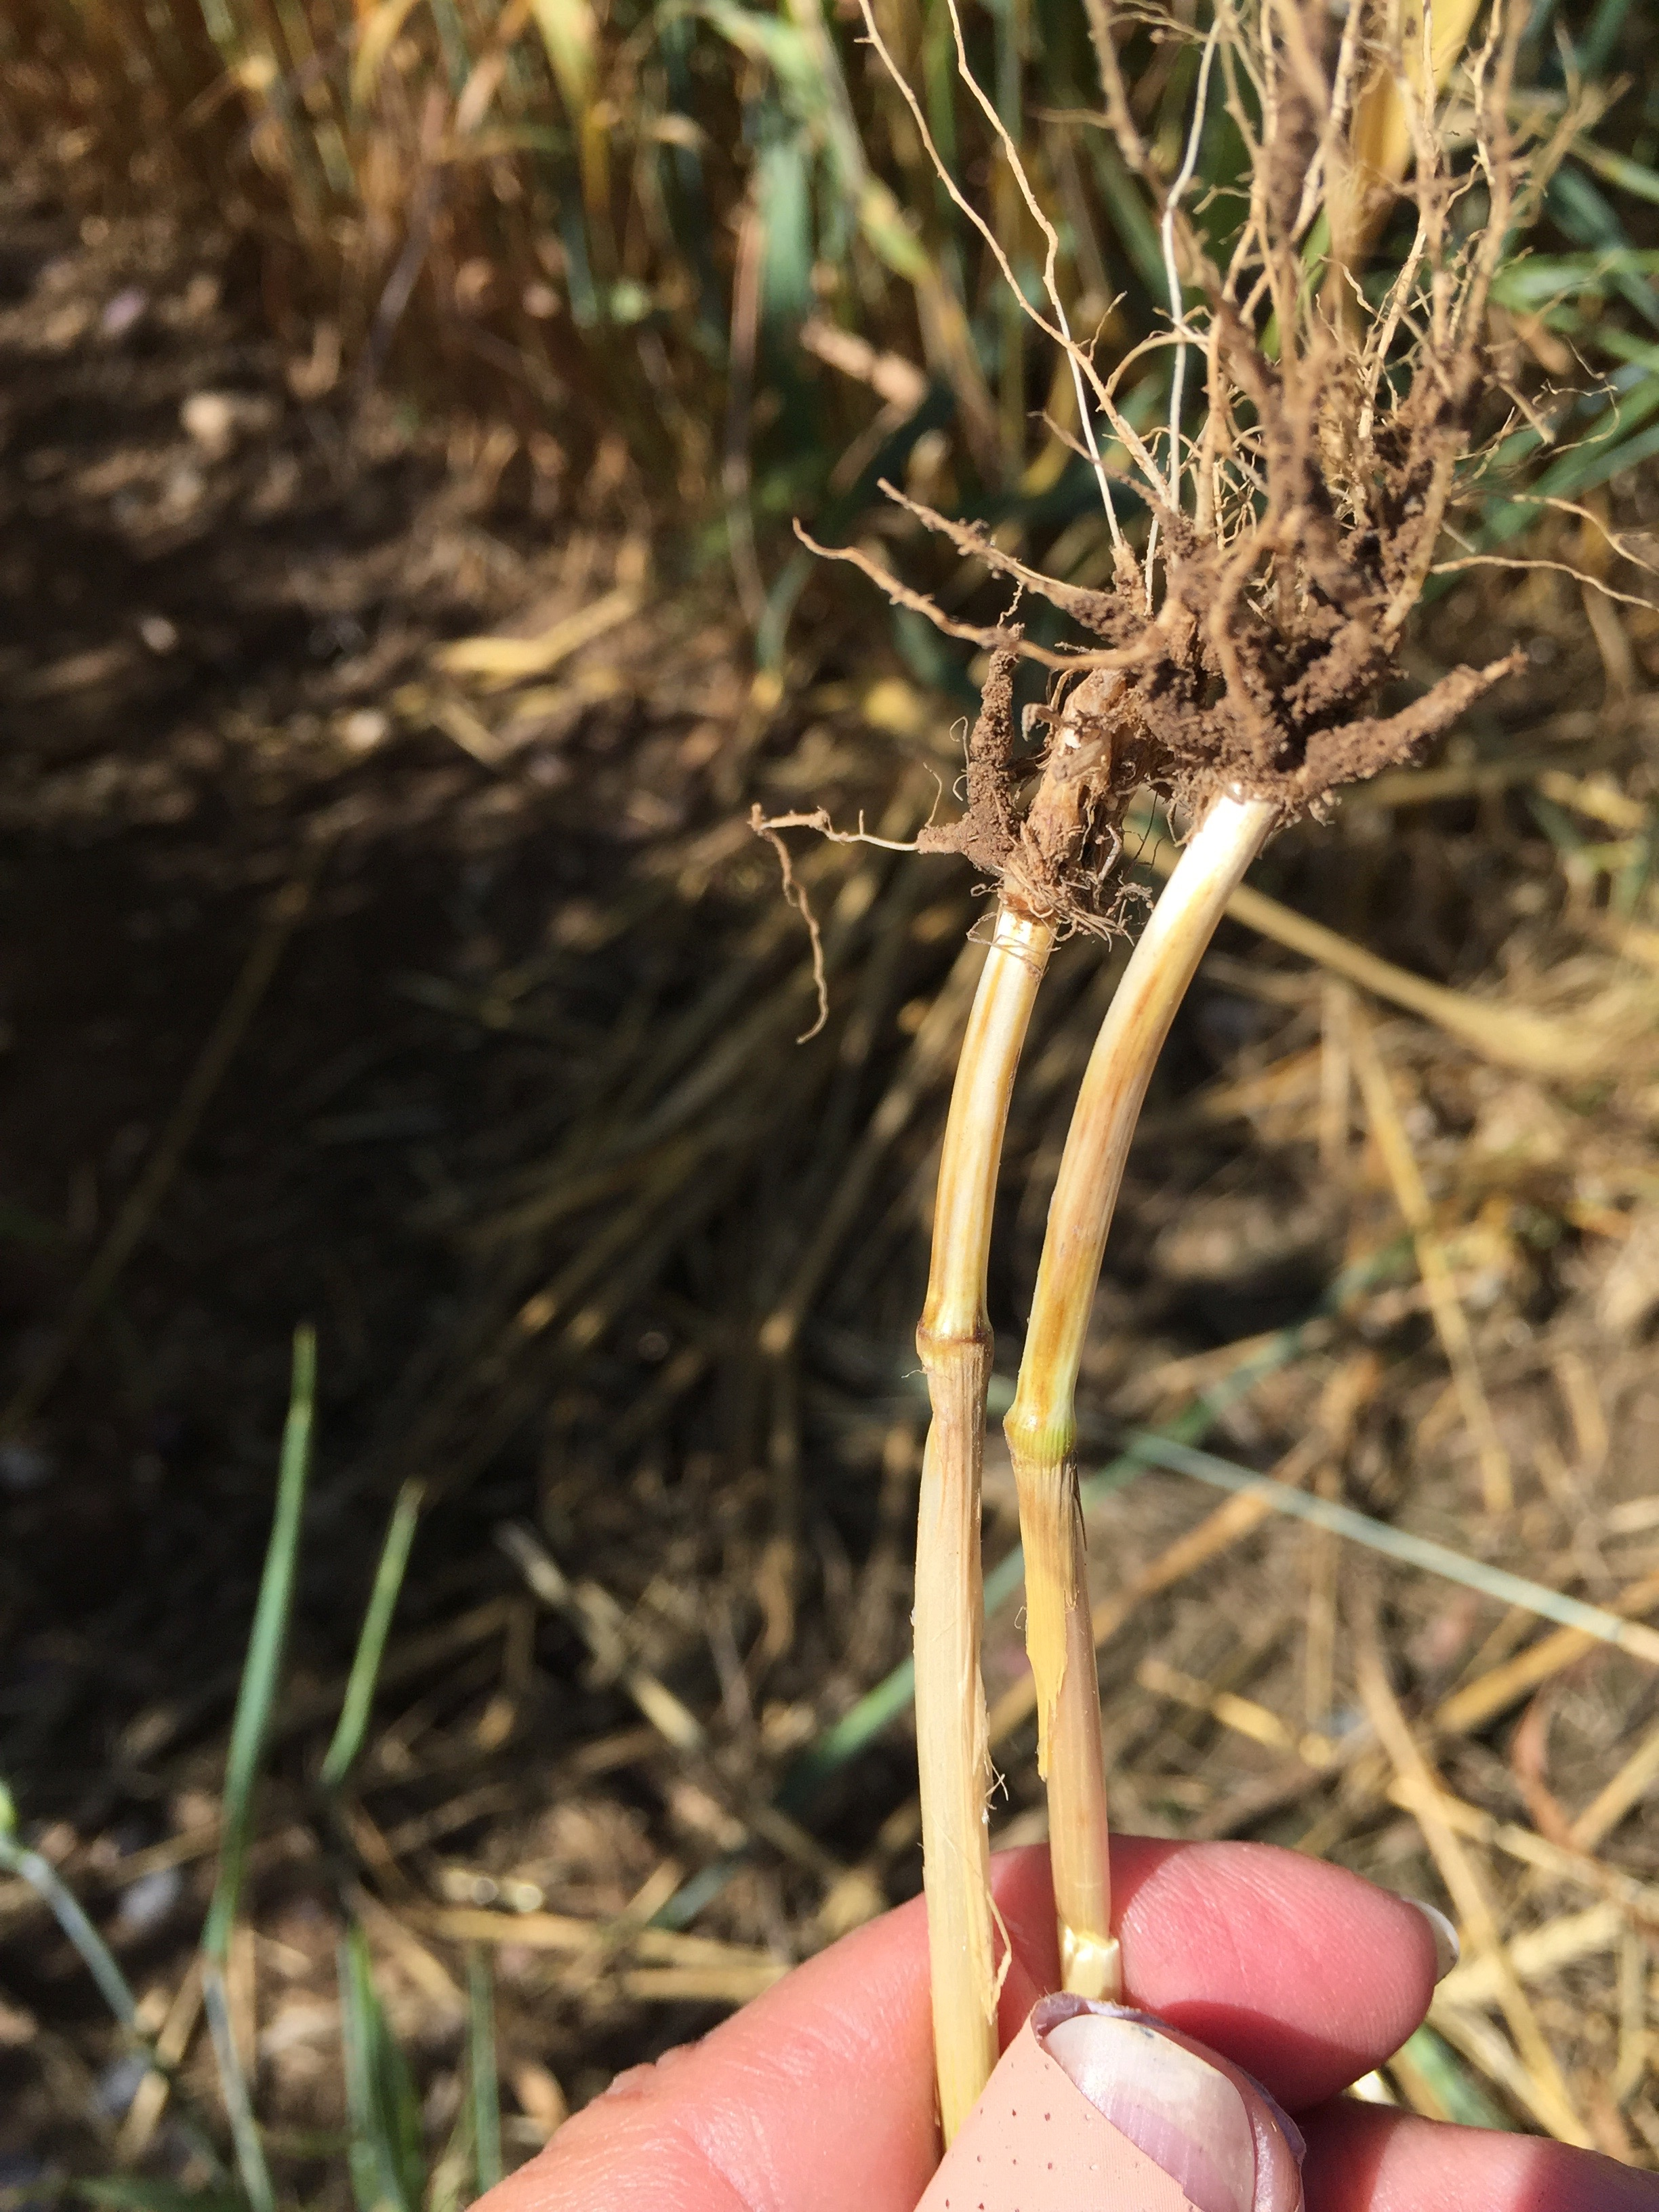 Stem lesions near soil indicative of Fusarium root, crown, and foot rot.